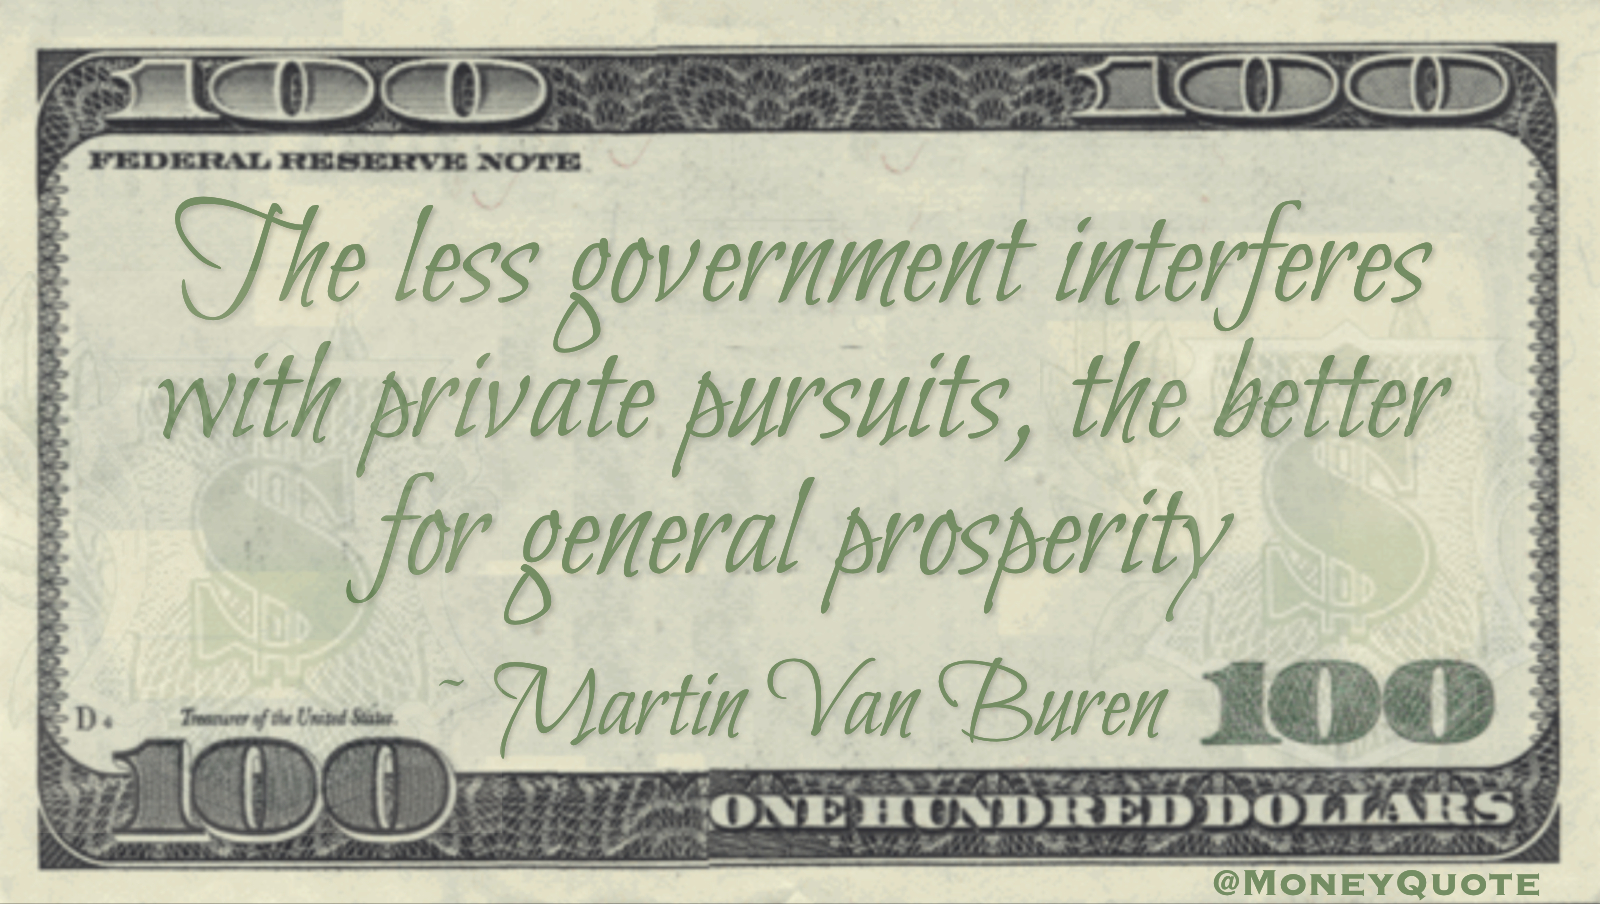 The less government interferes with private pursuits, the better for general prosperity Quote